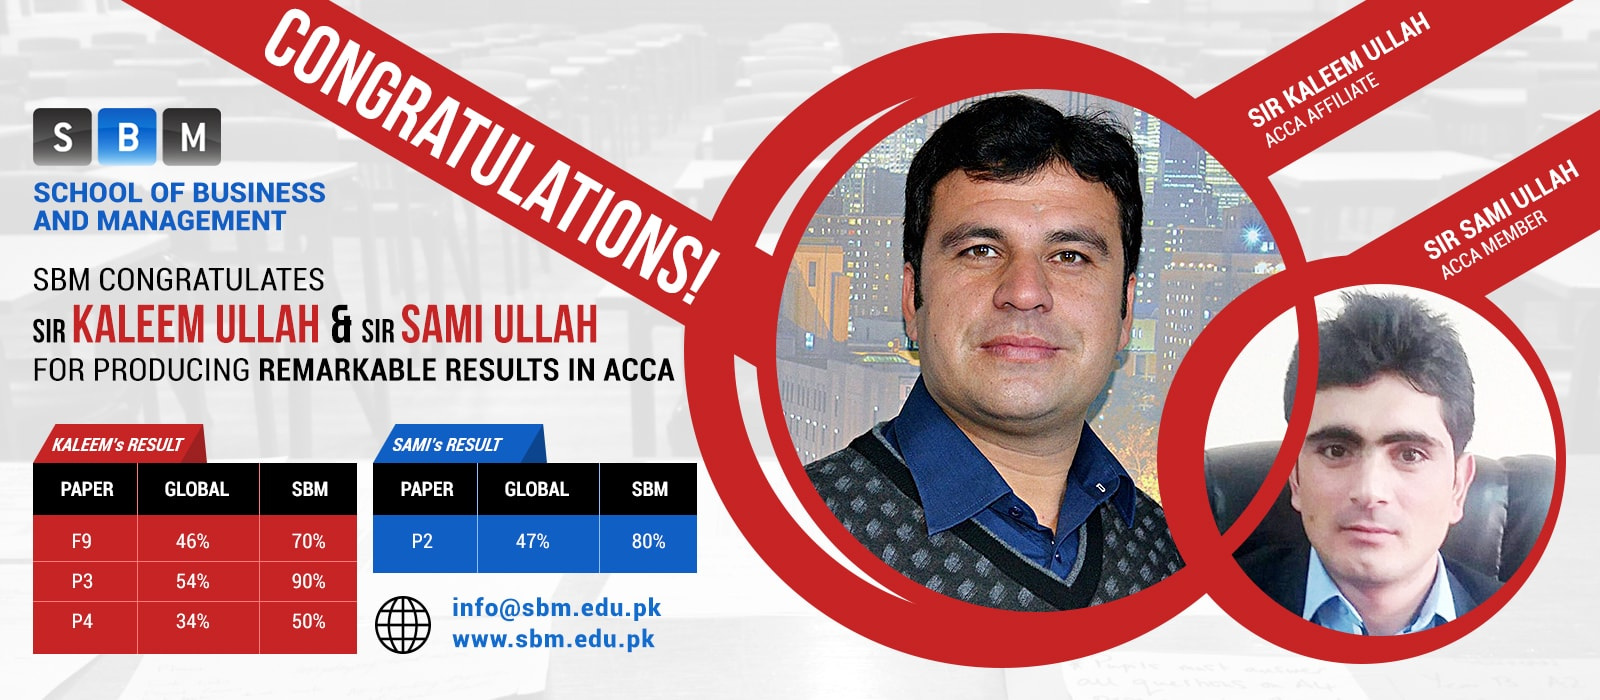 Congrats to Sir Kaleem Ullah and Sir Sami Ullah for ACCA's Result